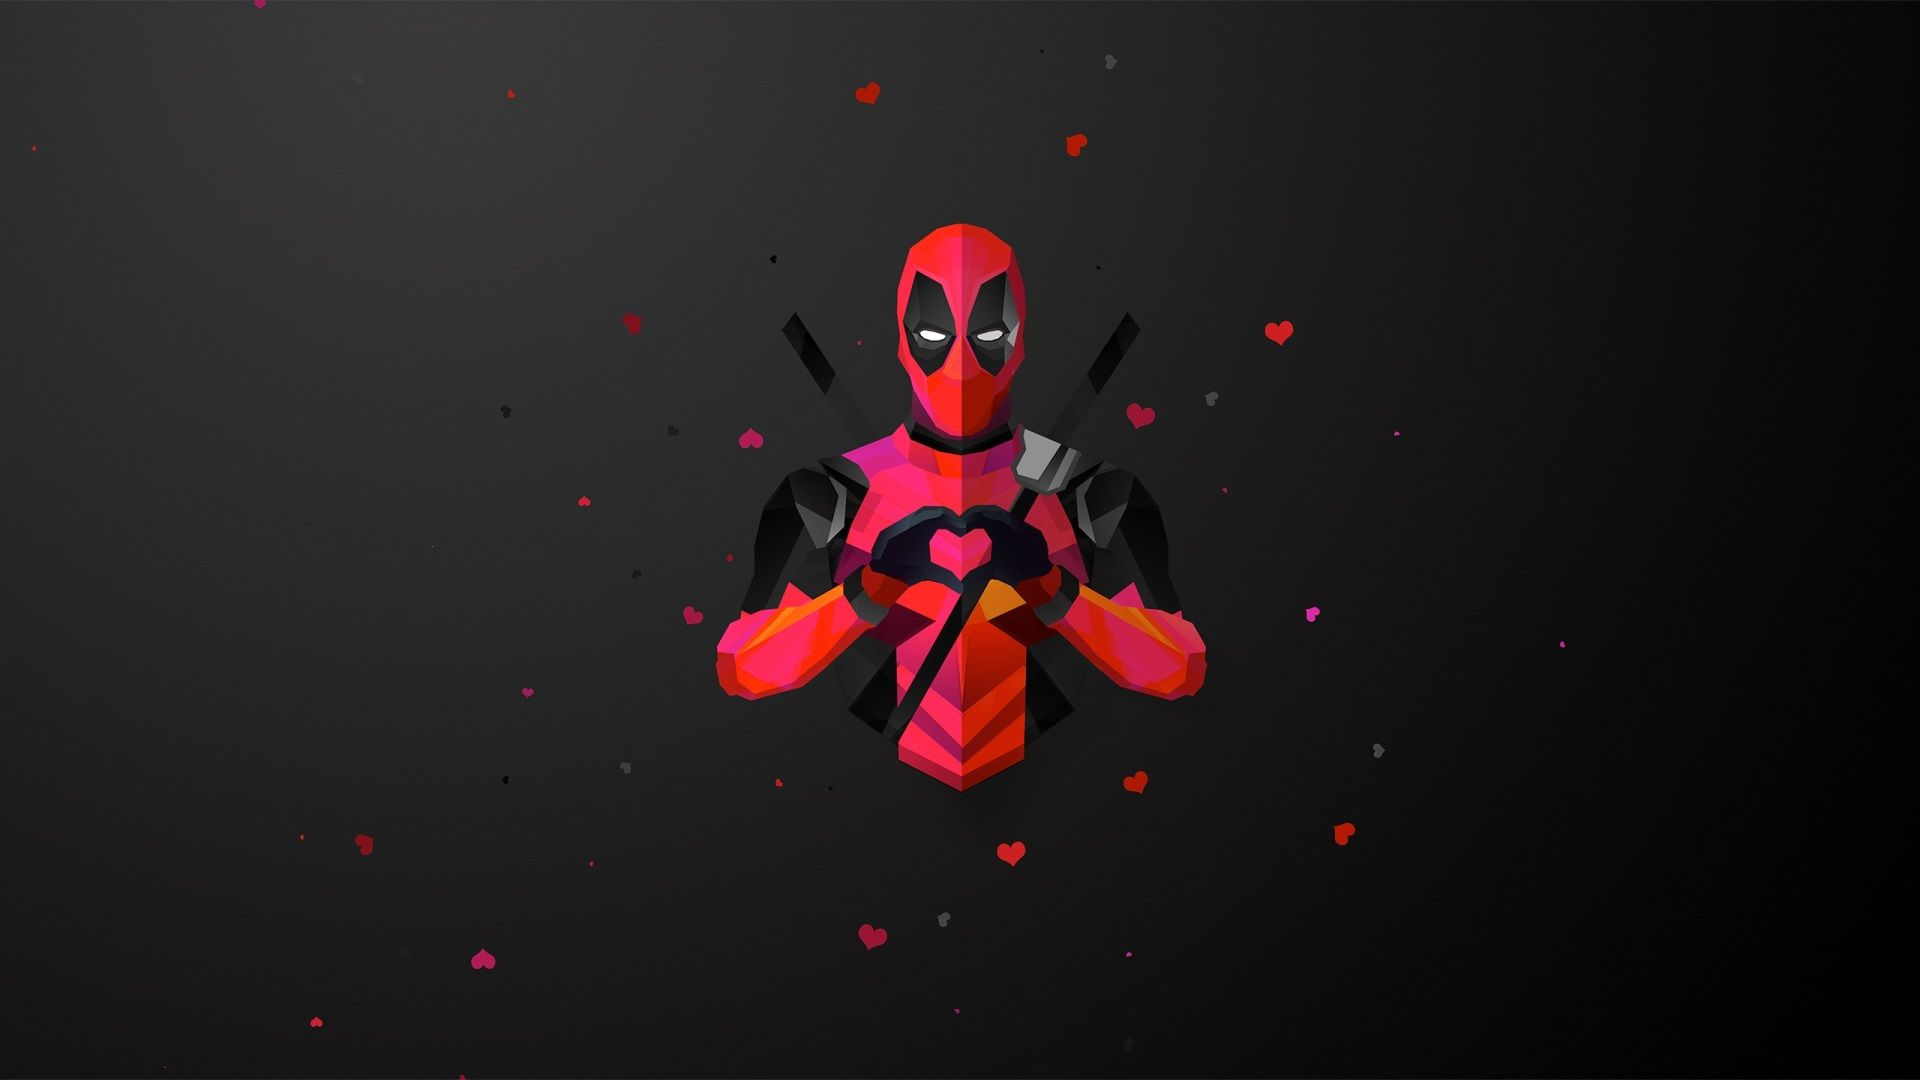 1920x1080 Deadpool Wallpaper Pack 1080p Hd Deadpool